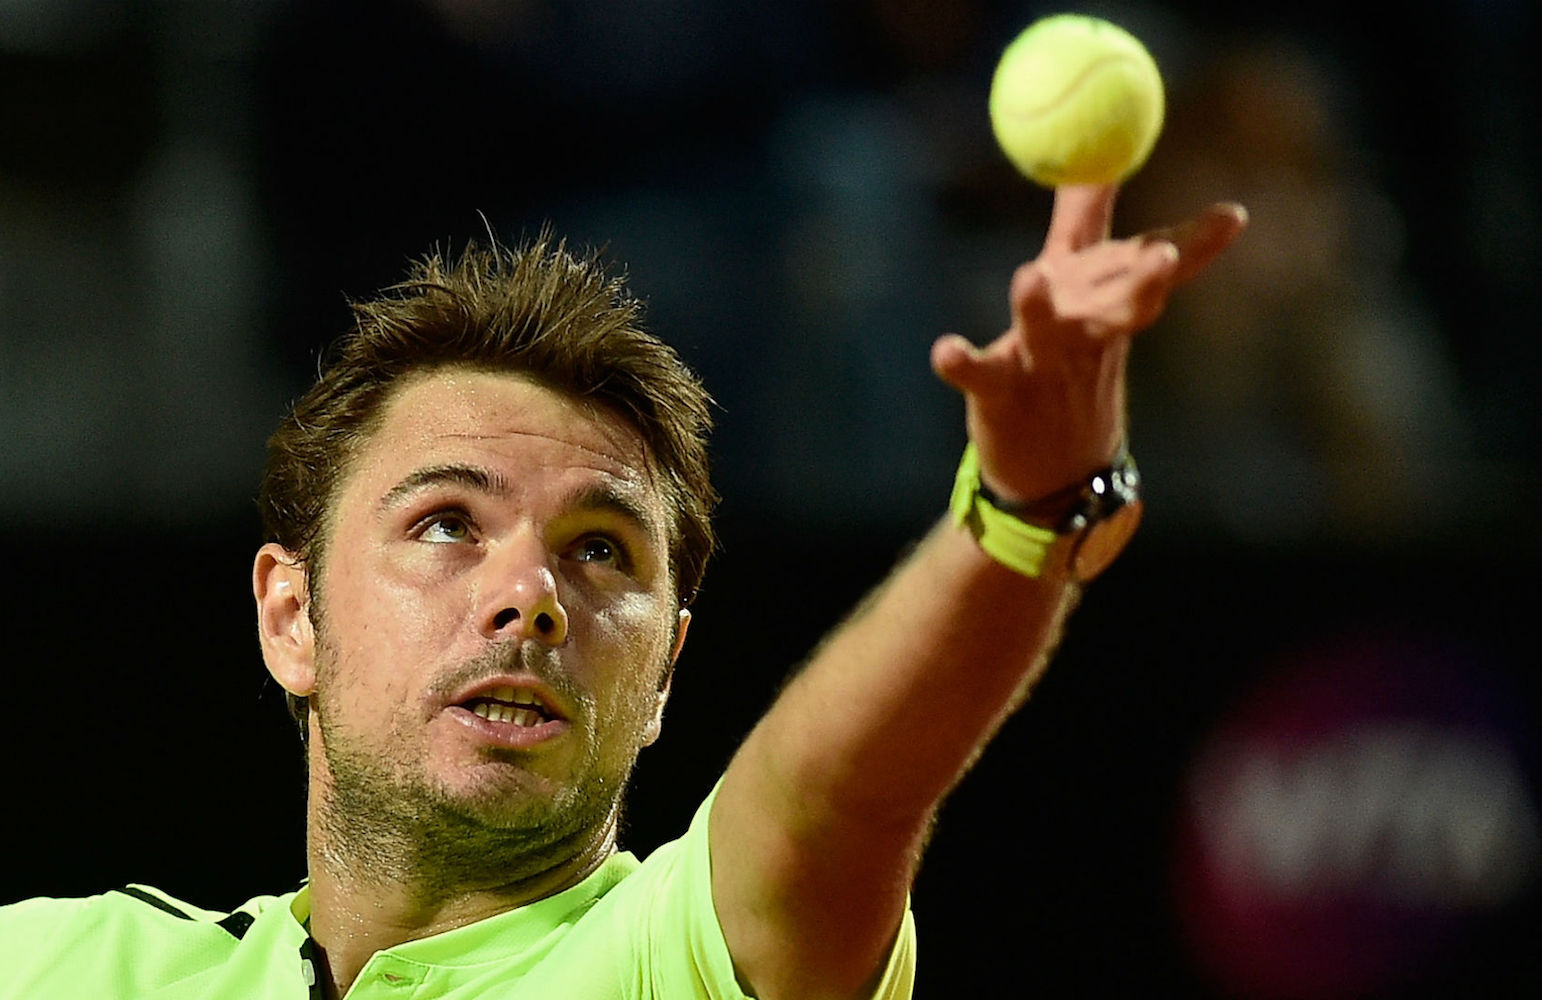 Stanislas Wawrinka wearing the new Audemars Piguet Royal Oak Offshore Diver Chronograph at Roland Garros 2016